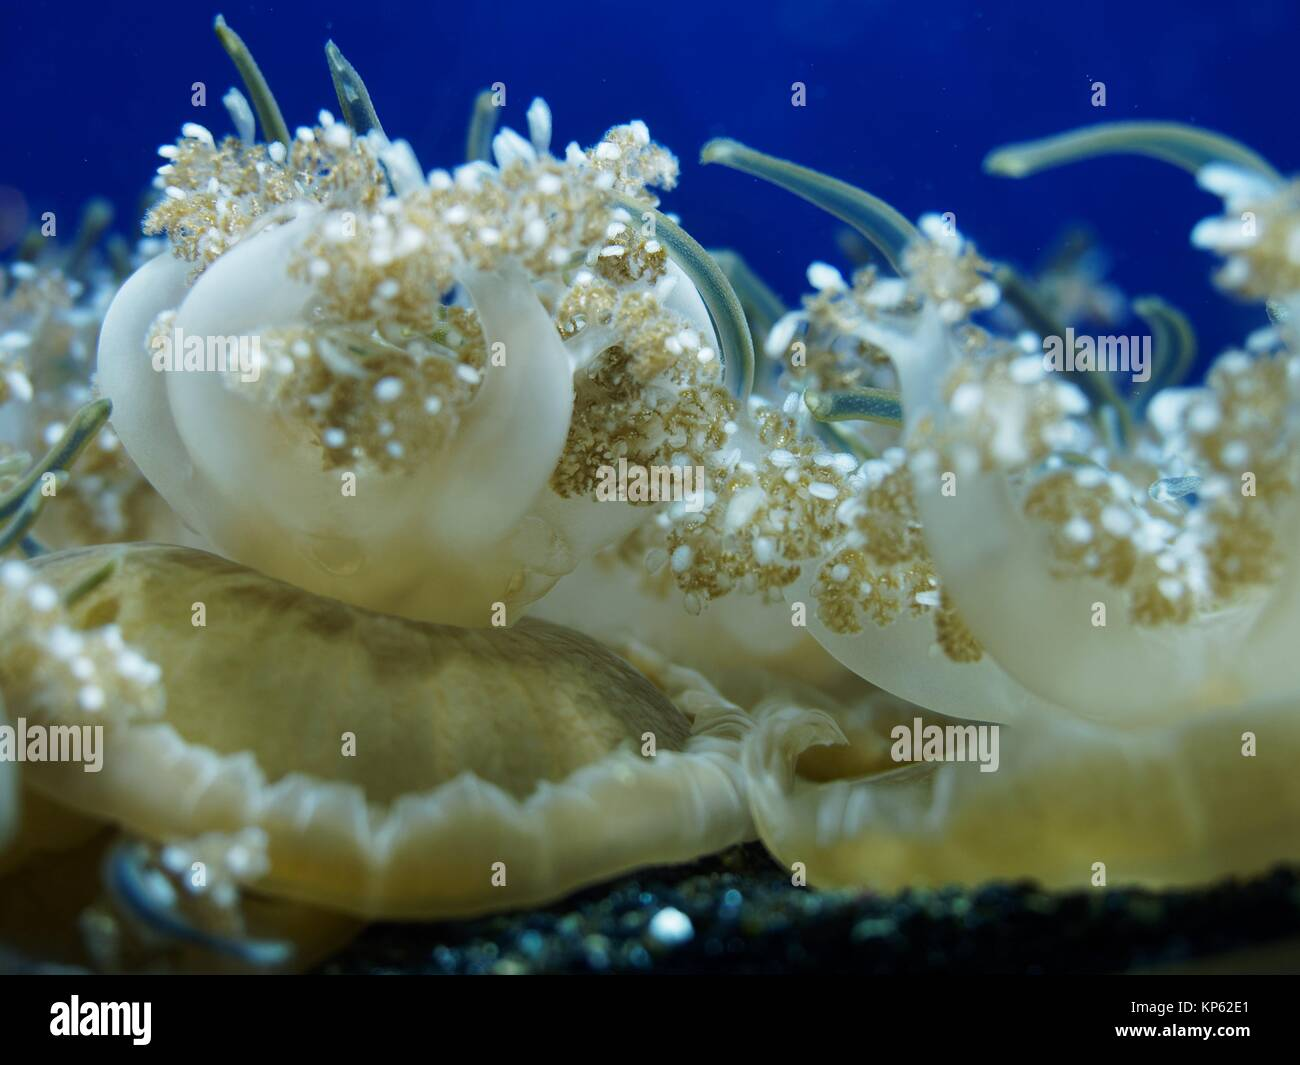 Jellyfish Cassiopeia andromedra - Stock Image